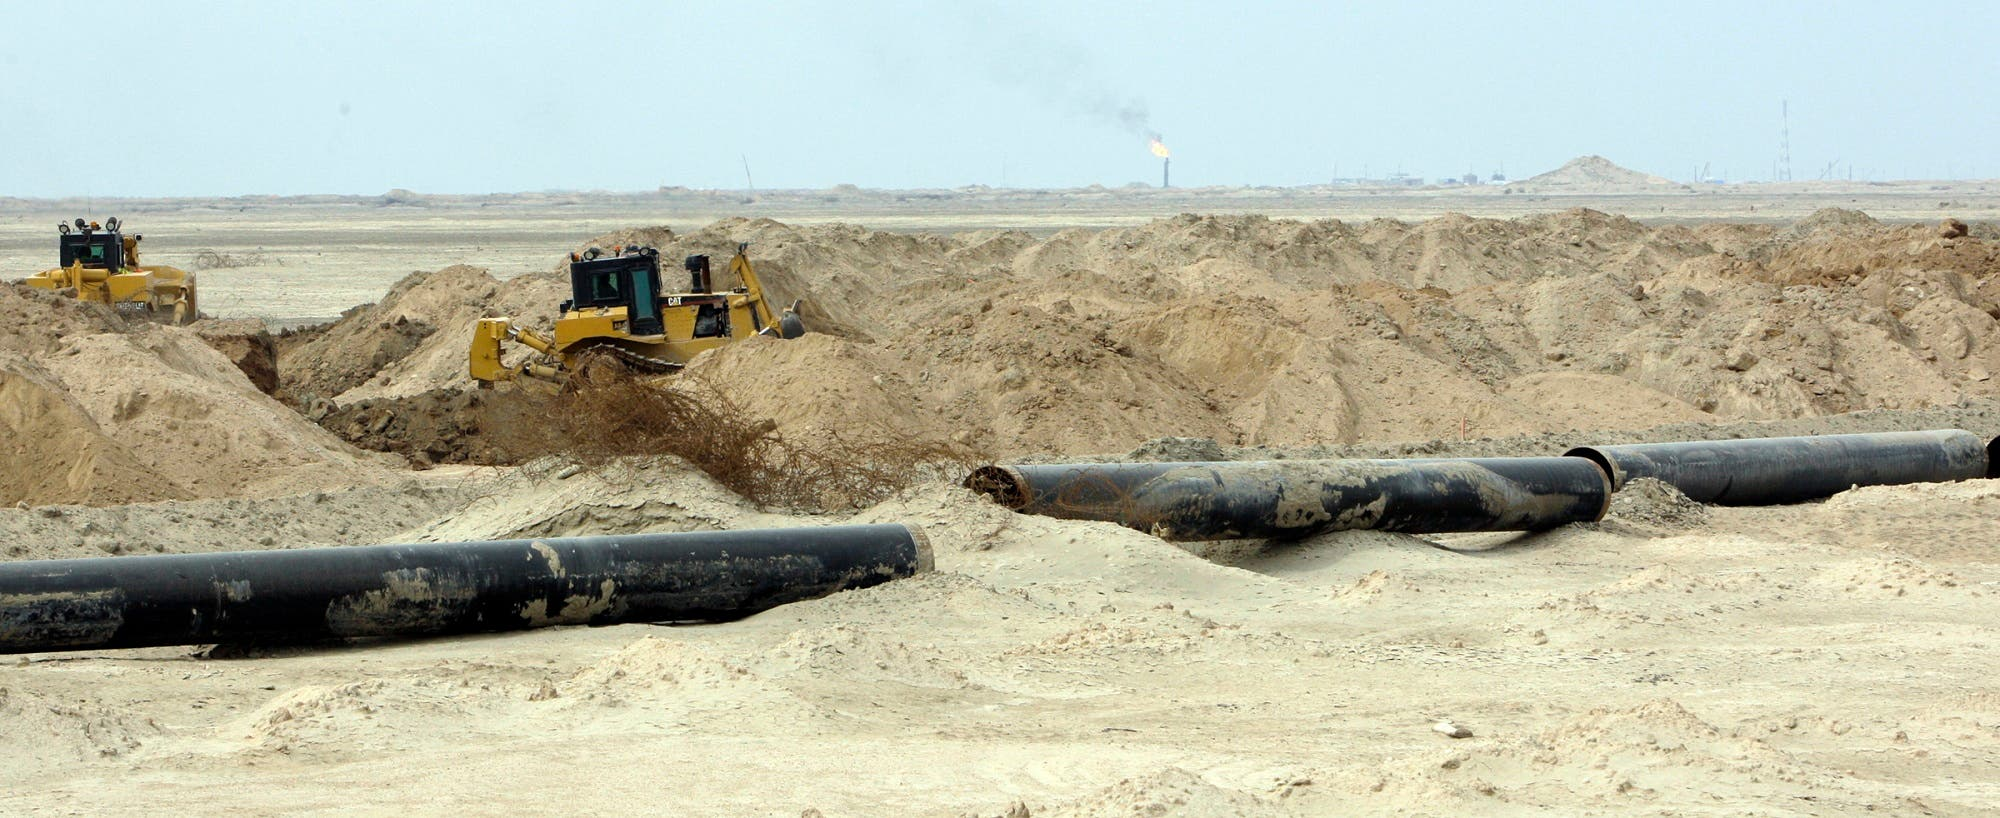 Pipes are put in place as the land is cleared from ordnance and mines laid down during the Iraq-Iran war 1980-1988, in the massive Majnoon oil field, some 40 kms from the eastern border with Iran, on February 7, 2012, in southeastern Iraq. (AFP)